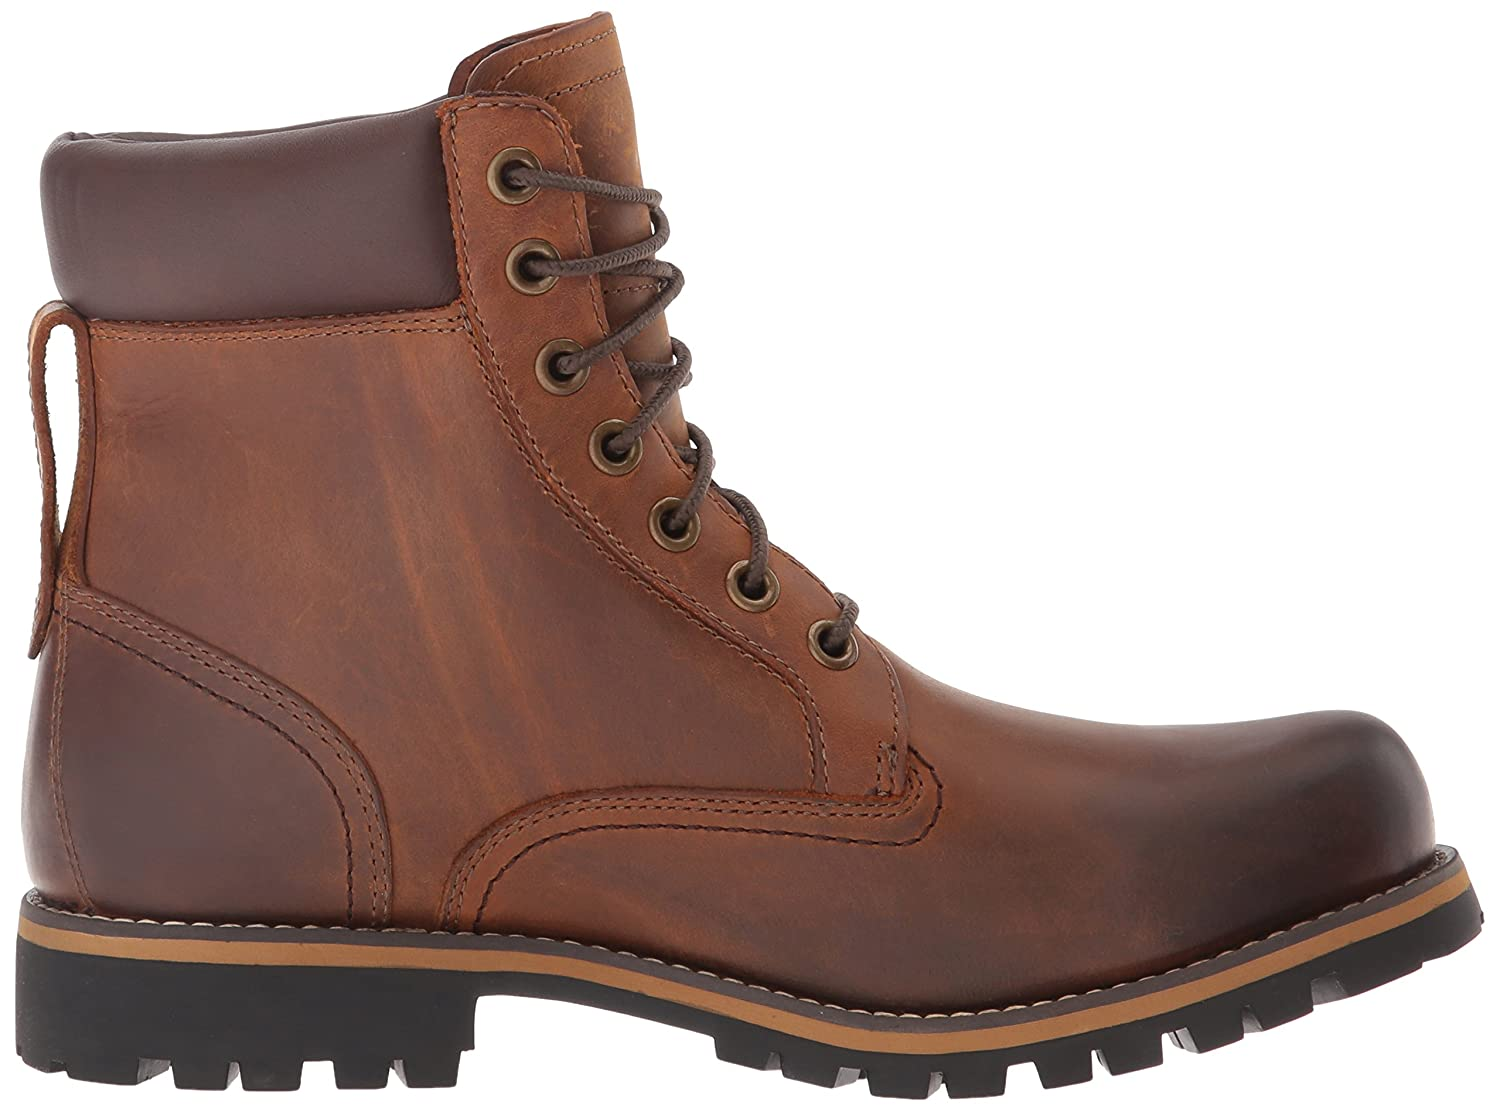 Earthkeepers Recensione Uomini Timberland pLqDZ